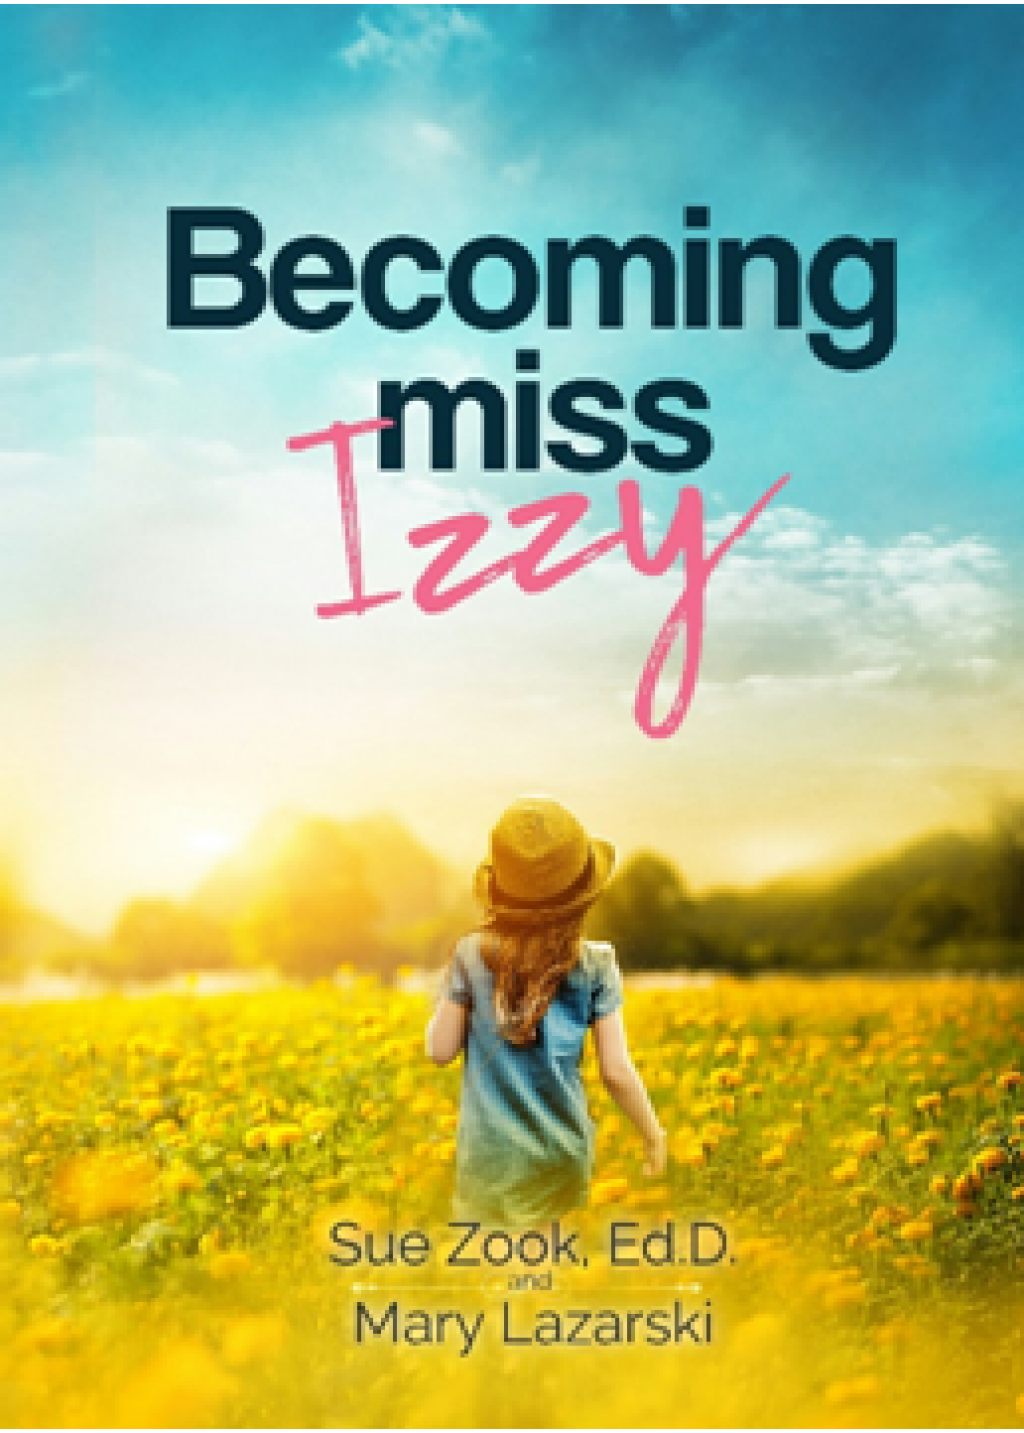 BECOMING MISS IZZY